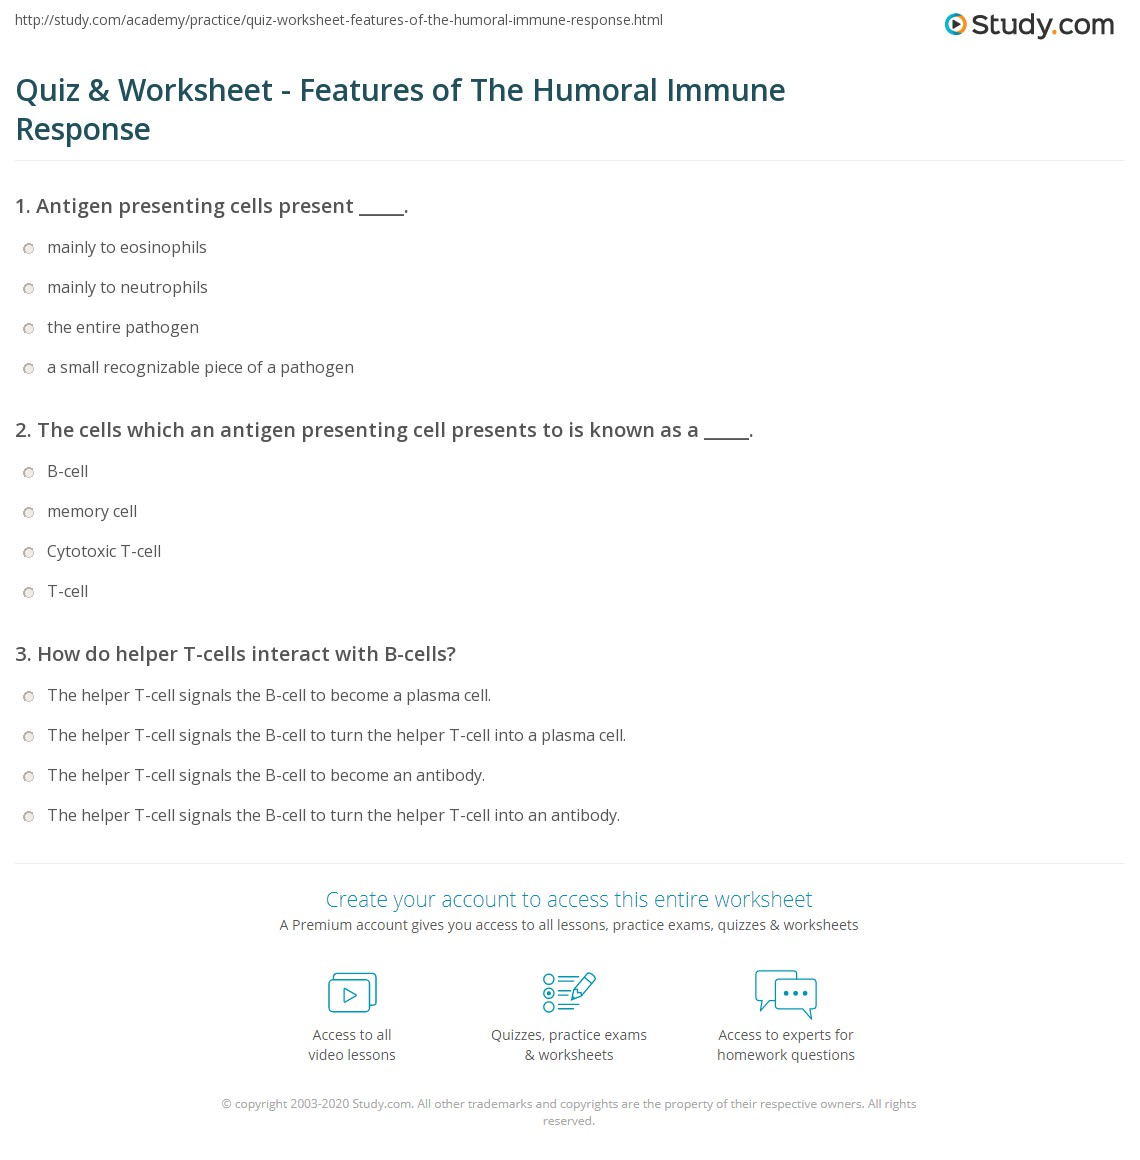 Quiz & Worksheet - Features of The Humoral Immune Response ...